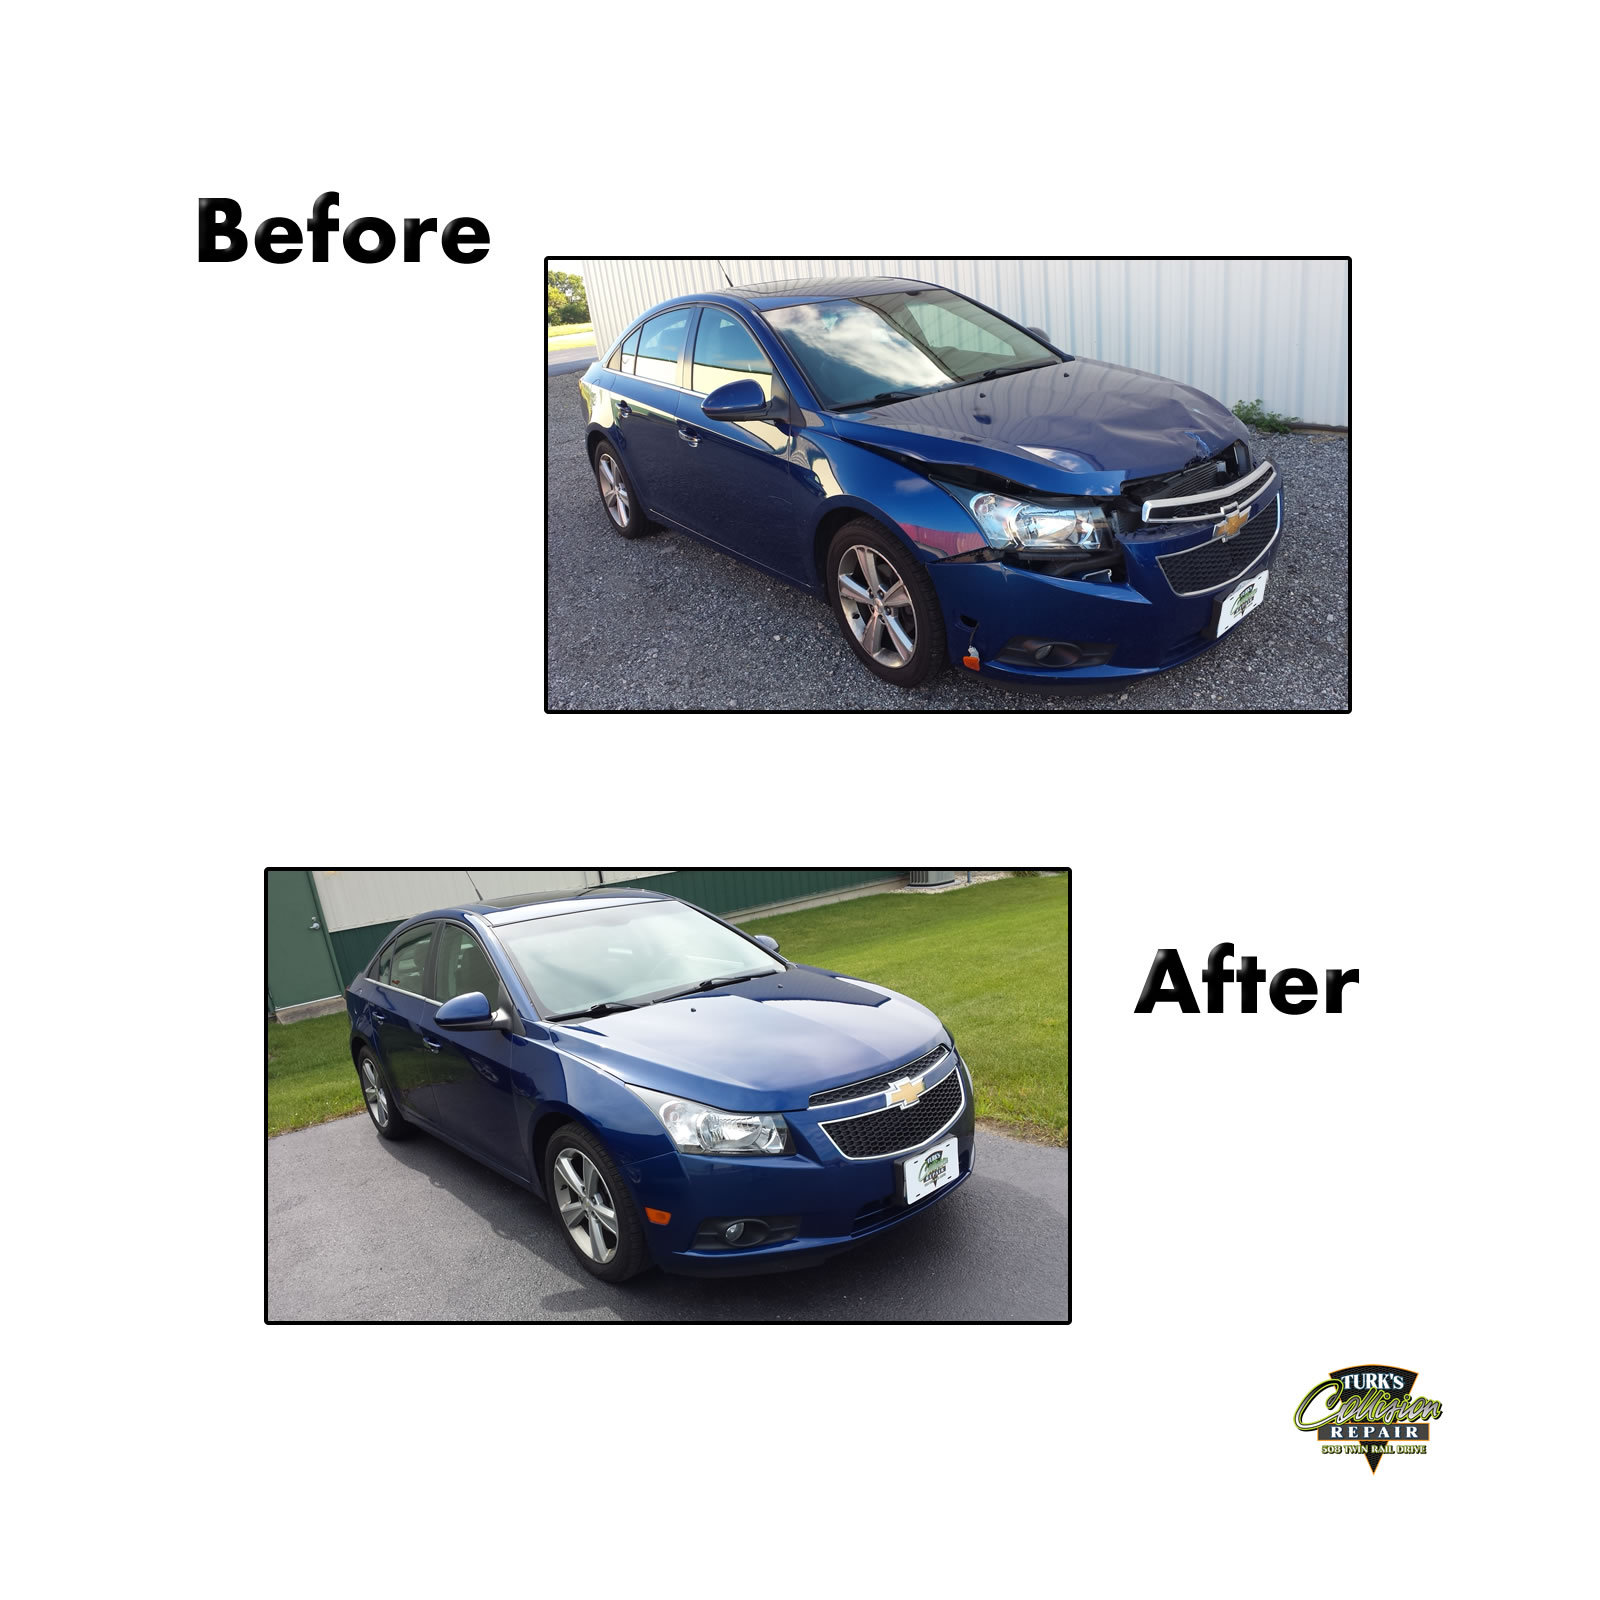 Chevy Cruze Collision Repair